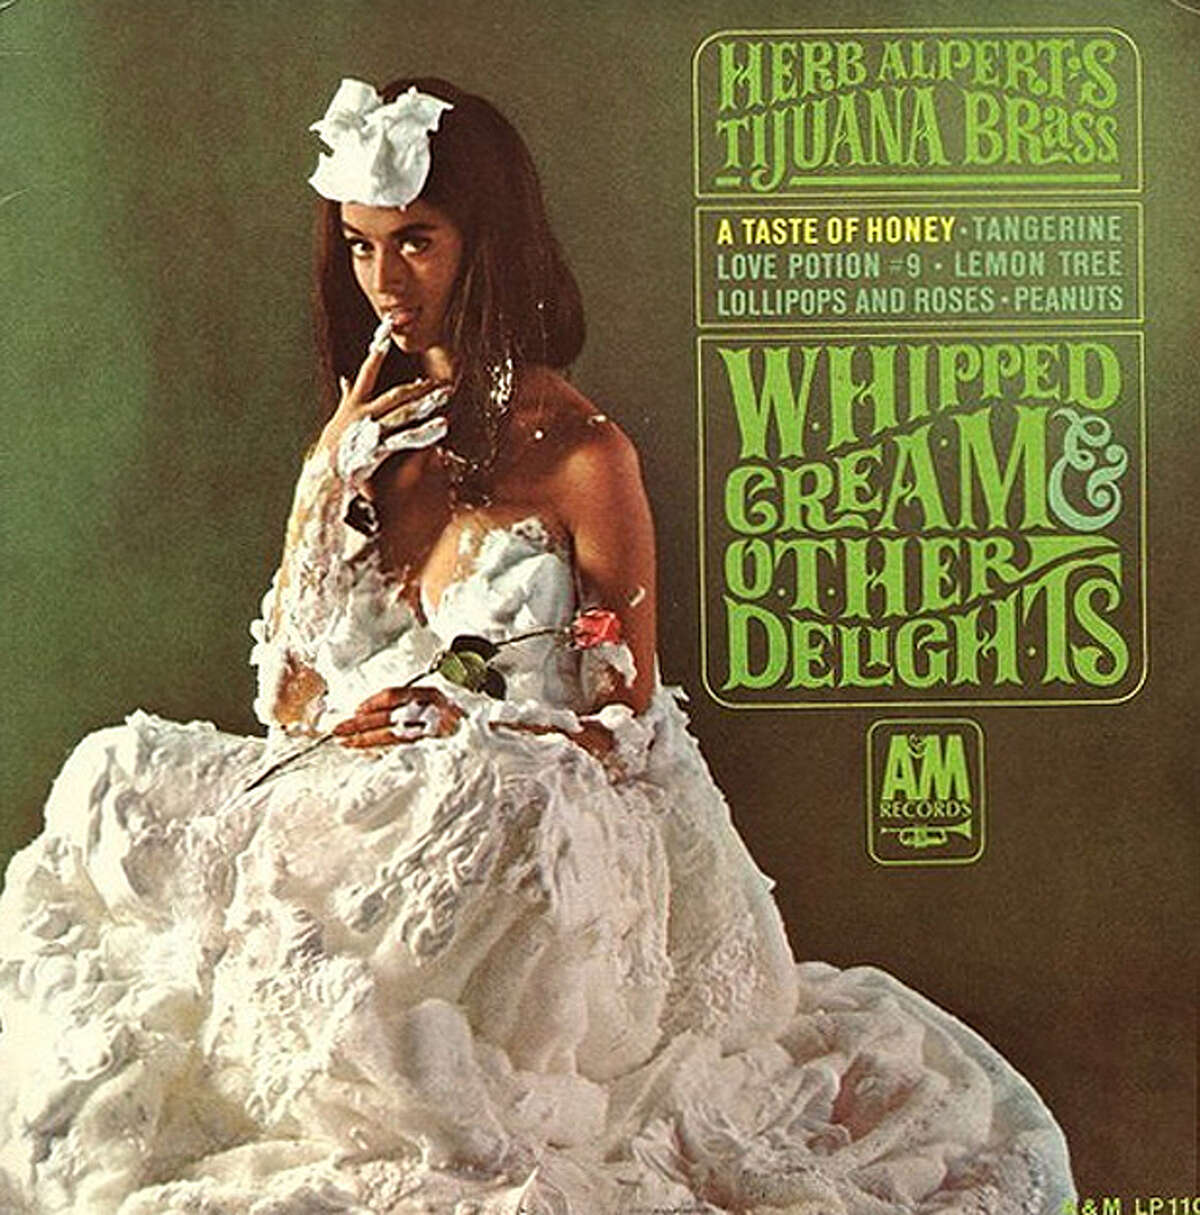 """""""Whipped Cream and Other Delights"""" by Herb Alpert and the Tijuana Brass has reportedly sold more than 6 million copies since its release in 1965. Dolores Erickson, a Seattle native and Cleveland High School graduate who attended the University of Washington, was the cover model. During concerts, Alpert used to tell crowds, """"""""Sorry, we can't play the cover for you!"""""""